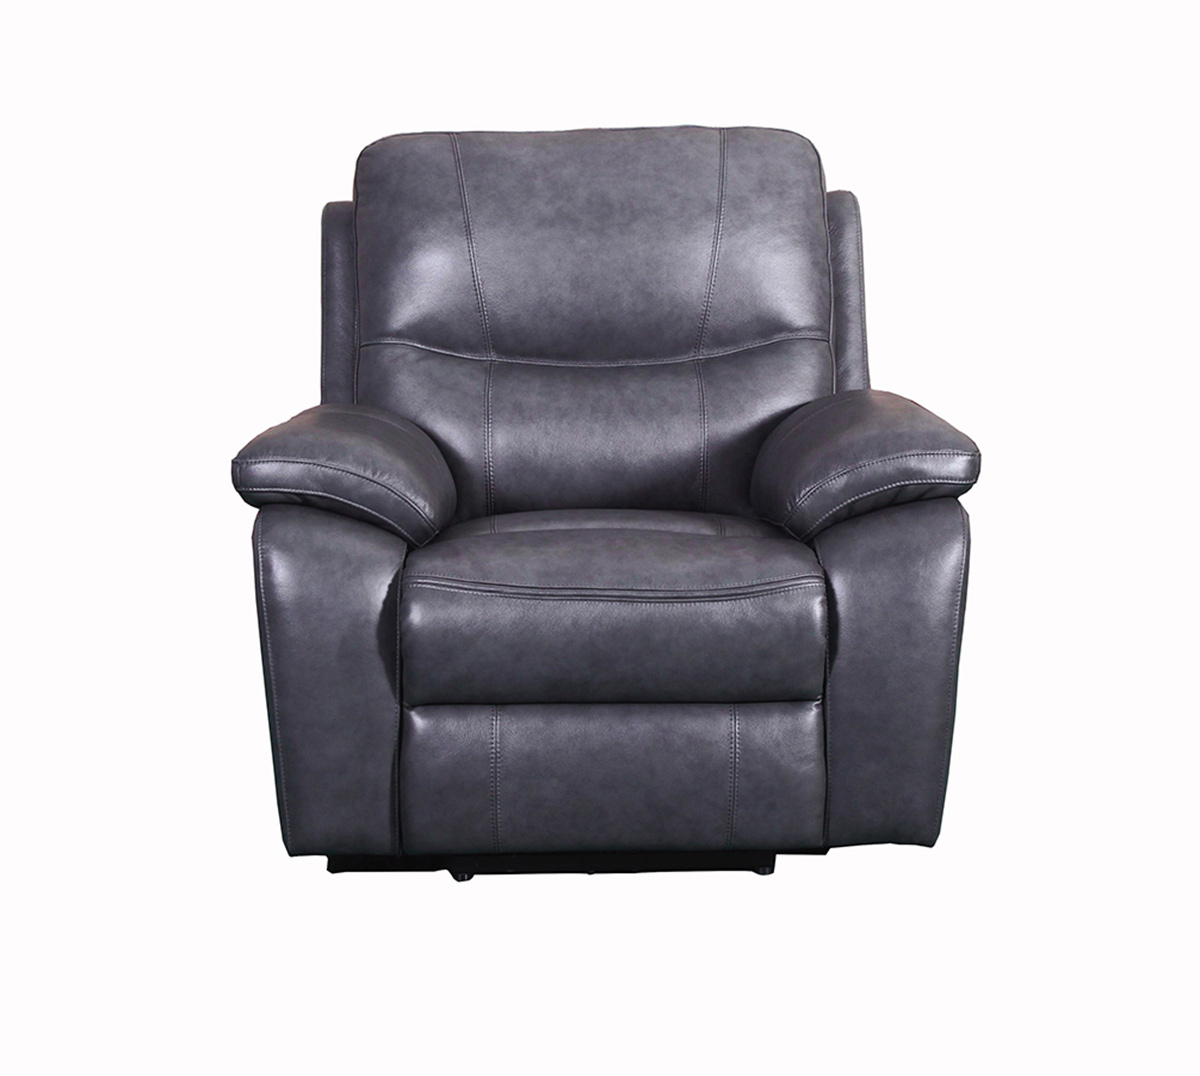 Barcalounger Carter Power Recliner Chair - Toby Gray/Leather Match